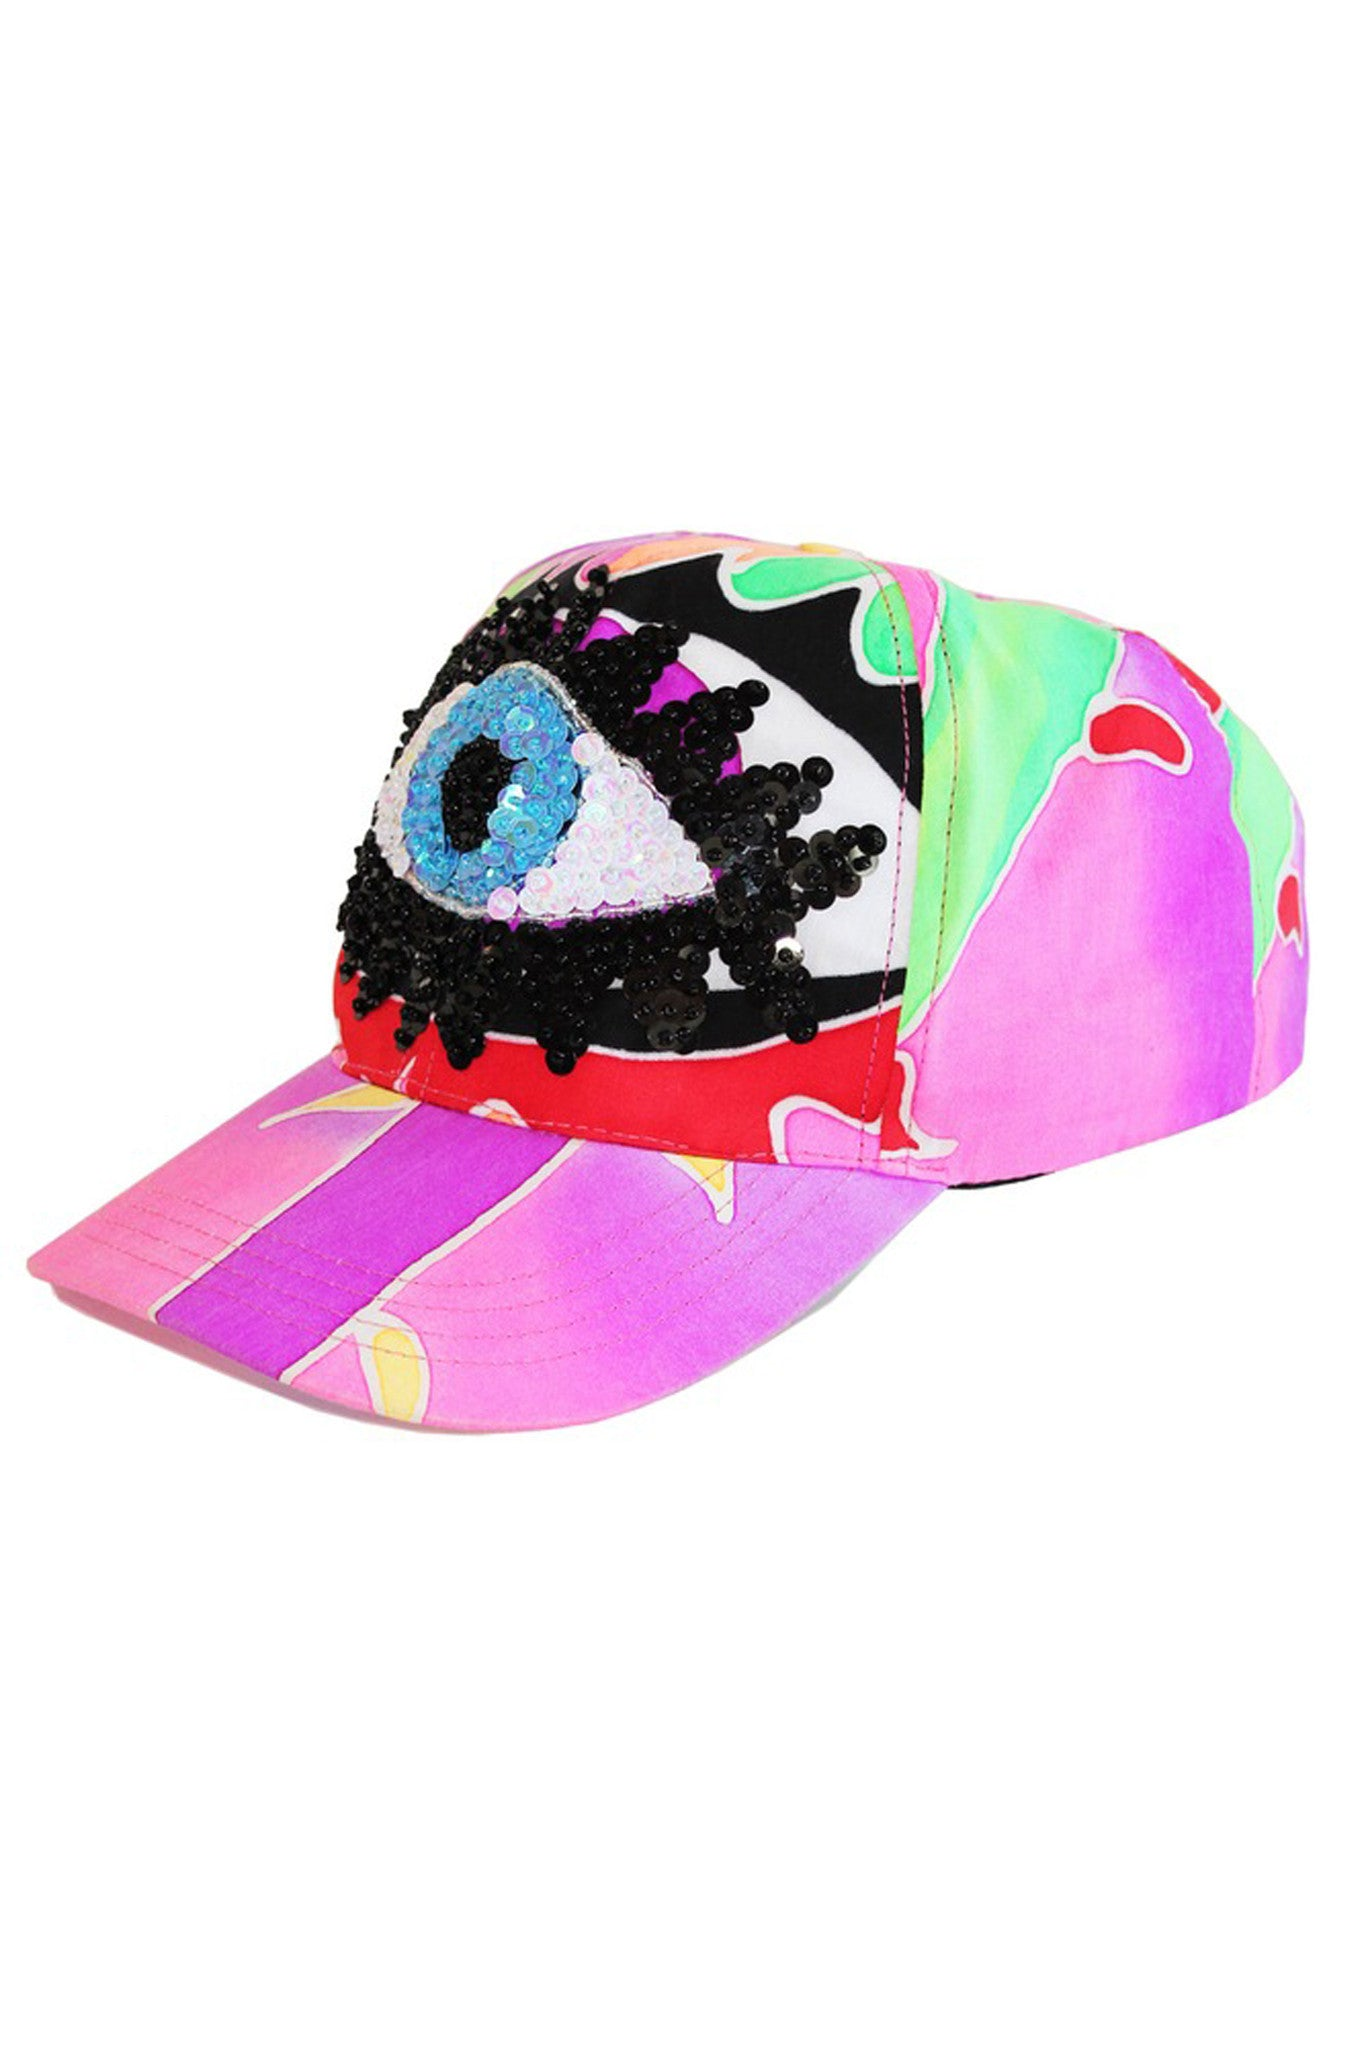 cactus batik baseball cap, cactus batik, evil eye batik, batik, evil eye, sequinned evil eye, evil eye batik cap, baseball cap, sequinned baseball cap, batik baseball cap, blue eye, evil eye, sequinned evil eye, sequinned hat, sequinned batik, cap, baseball cap, discount universe, di$count universe,